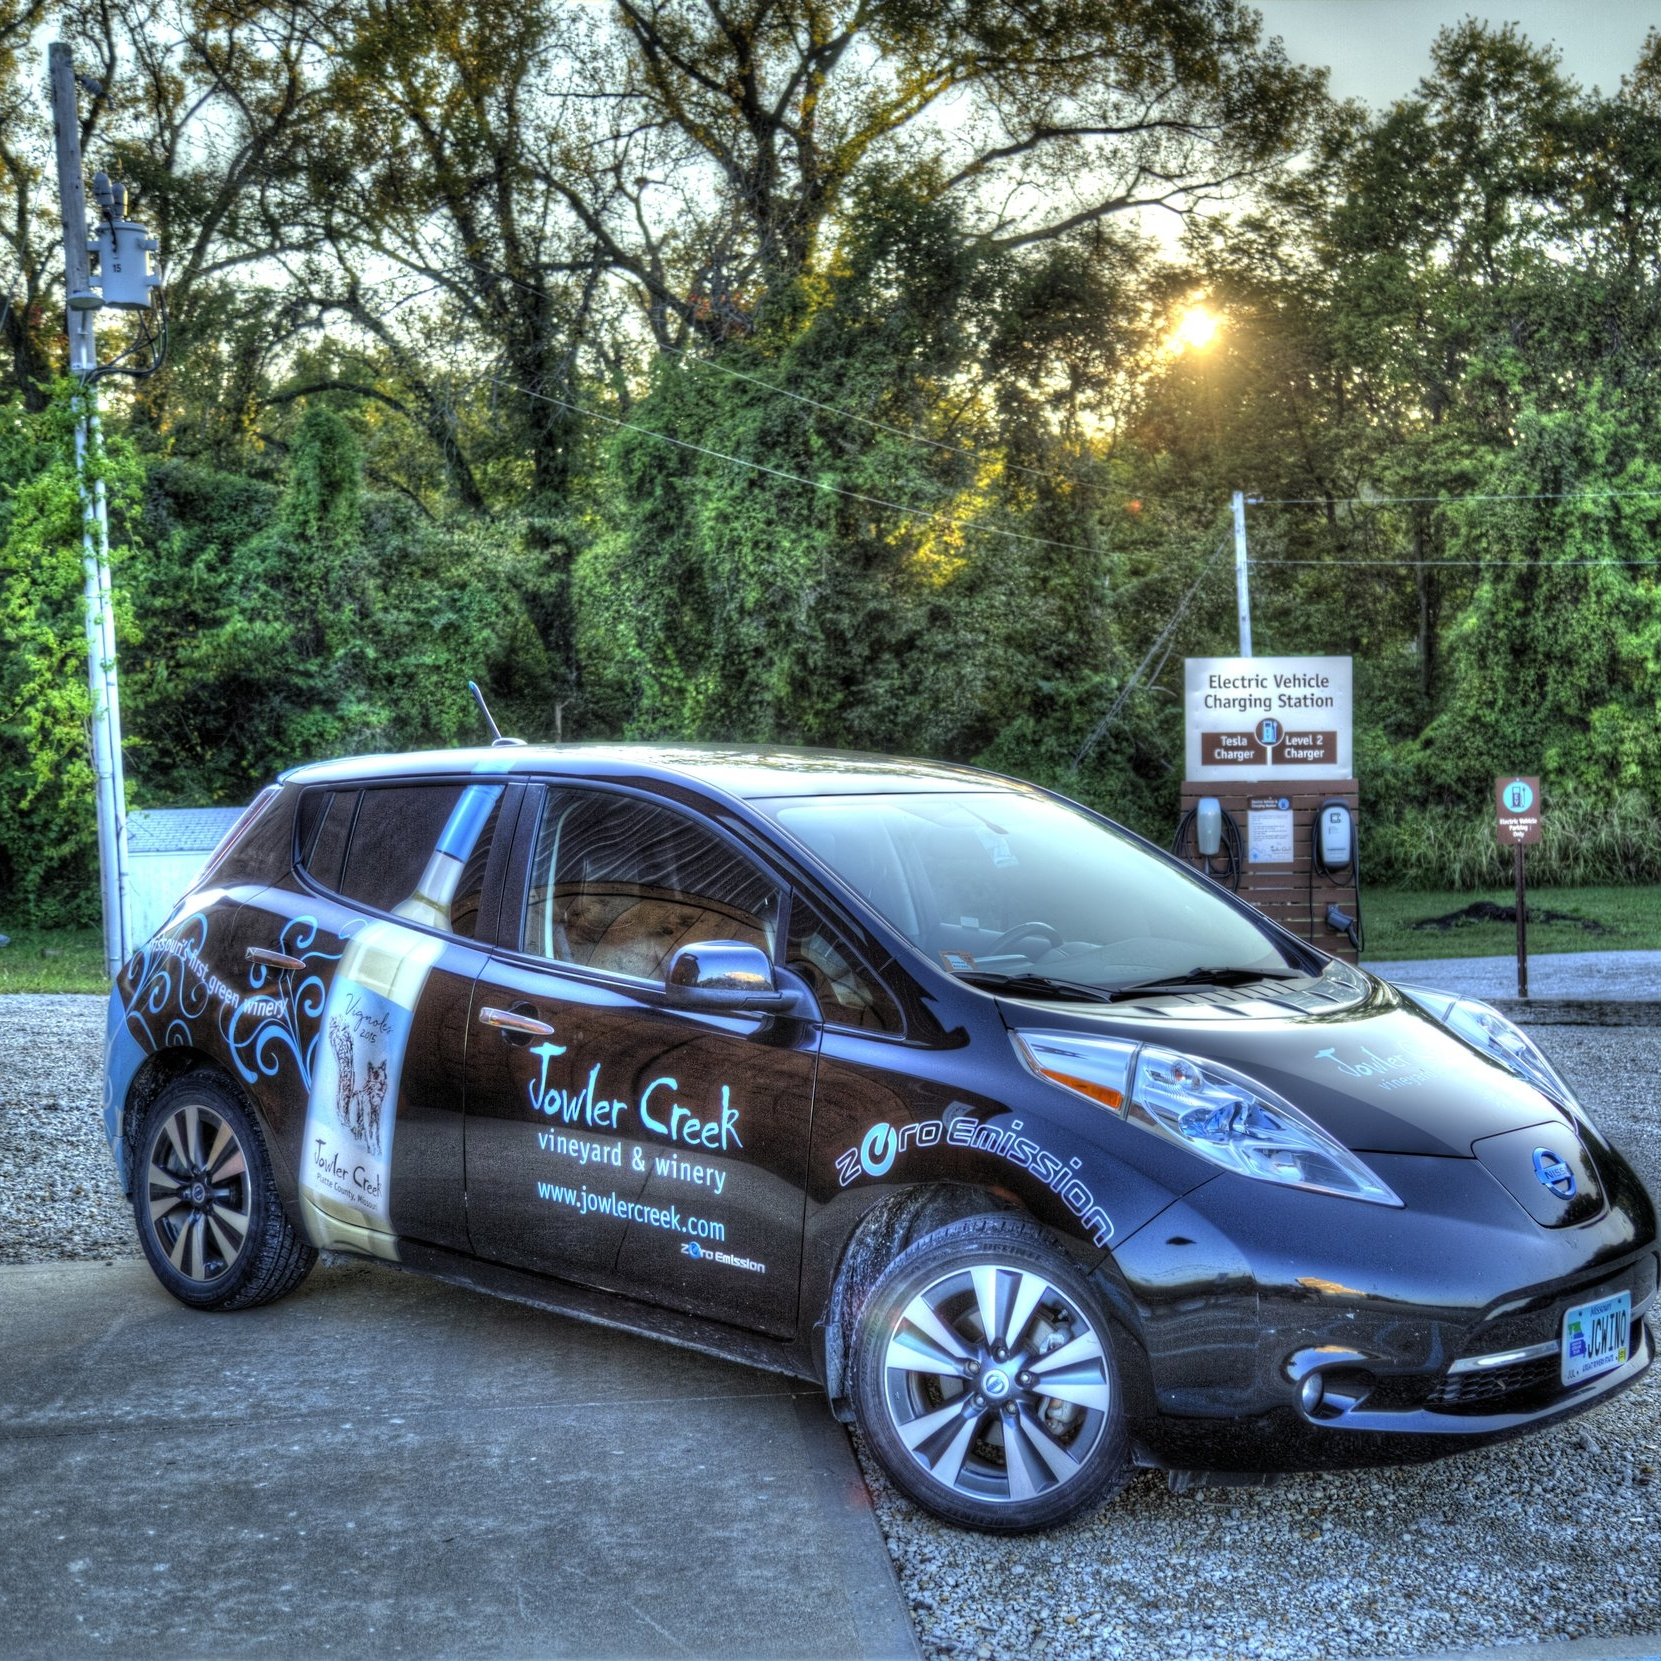 Jowler Creek Winery drives a zero-emissions Nissan Leaf as one of its many   g  reen, eco-friendly and sustainable practices  used to make its  award-winning wine ..  Jowler Creek has a winetasting room  near Weston Missouri, Kansas City Missouri and St. Joseph Missouri where it offers  winetasting  and  wine events  to taste their  sustainable wines .